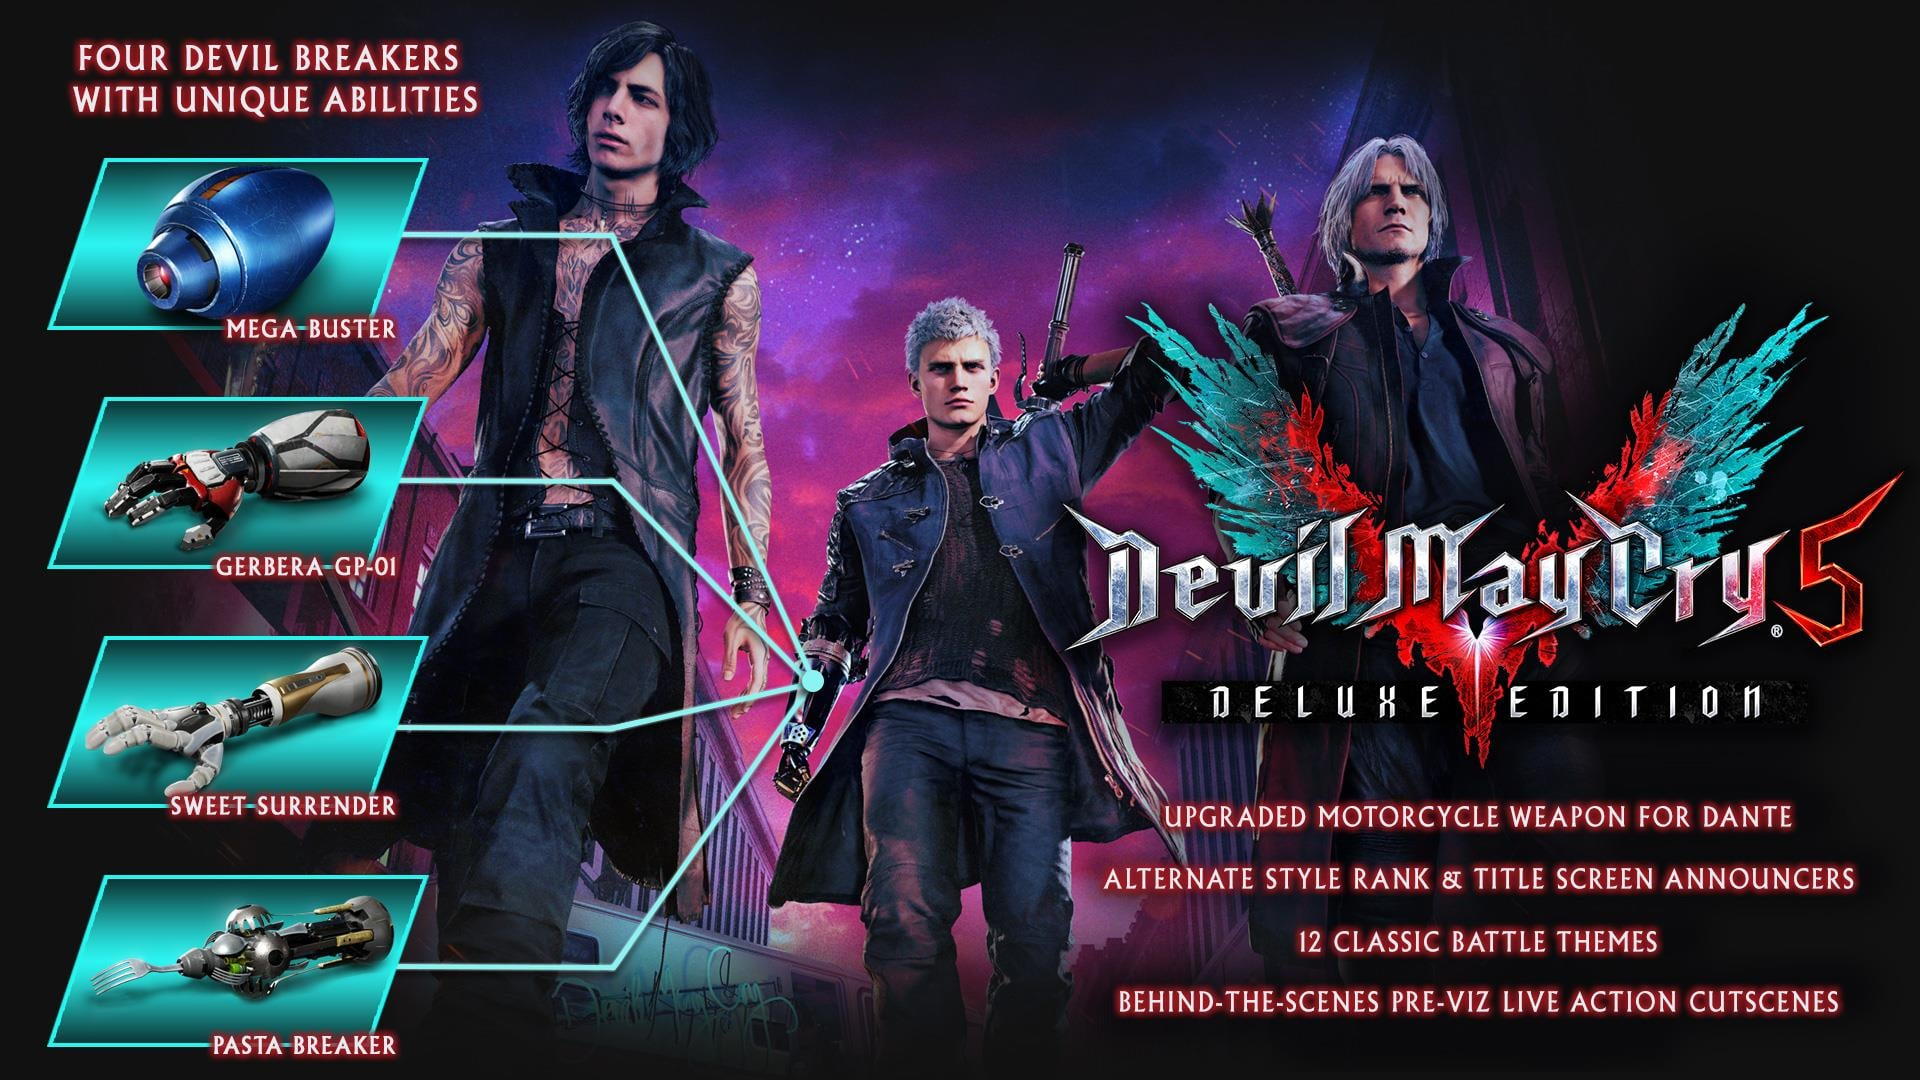 Devil May Cry 5 Deluxe Edition Breakdown